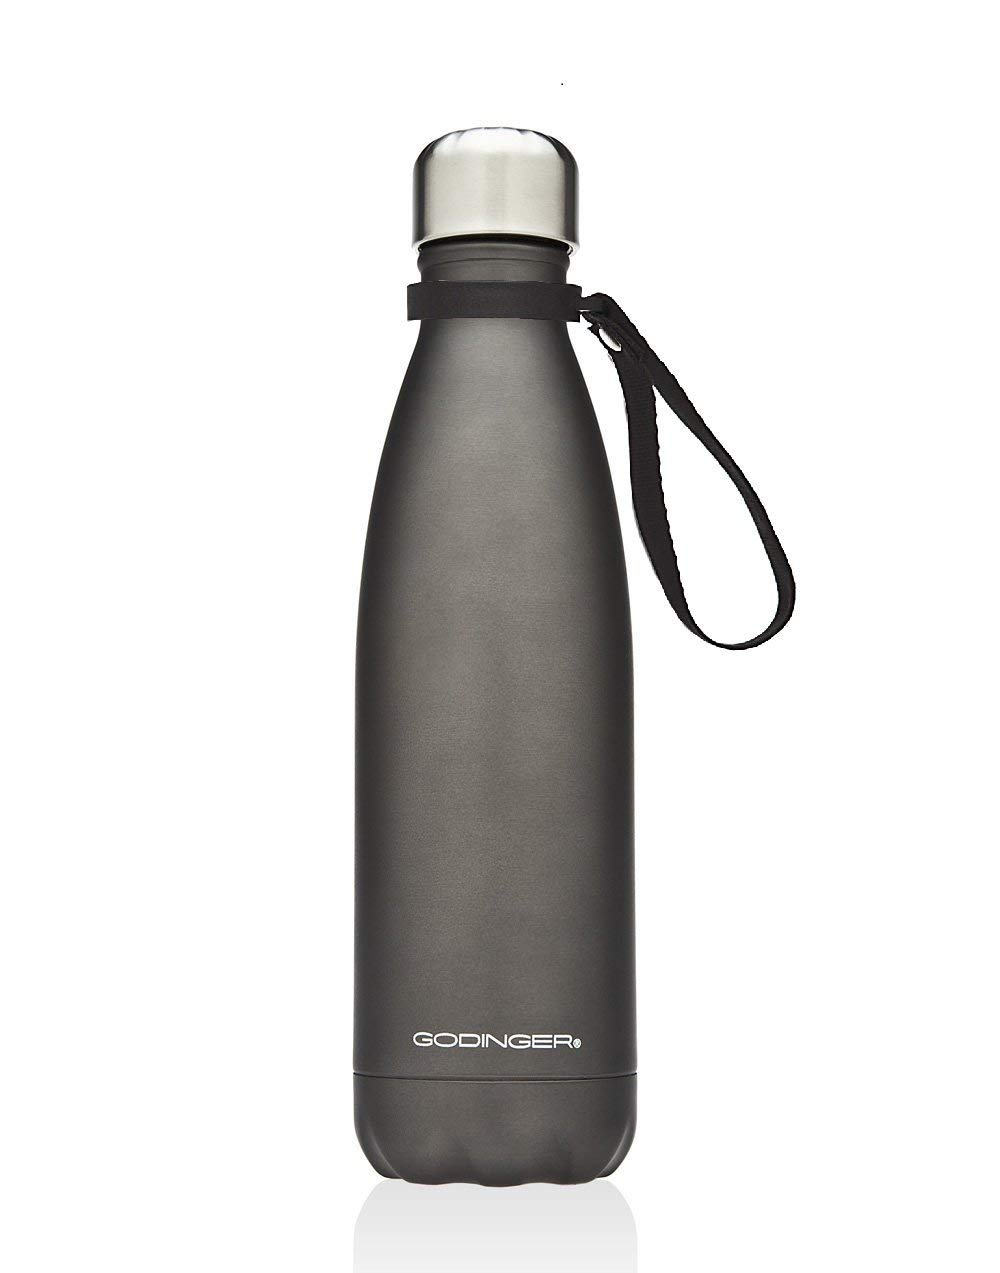 Sport Gift 500ml Home Vacuum Insulated Thermos Sports Flask Keep Drinks Cold 14Hours or Hot 12Hours 17OZ XNBDA Thermos Vacuum Insulated Stainless Steel Water Bottle 500ml 17OZ Black Keep Drinks Cold 14Hours Hot 12Hours Travel